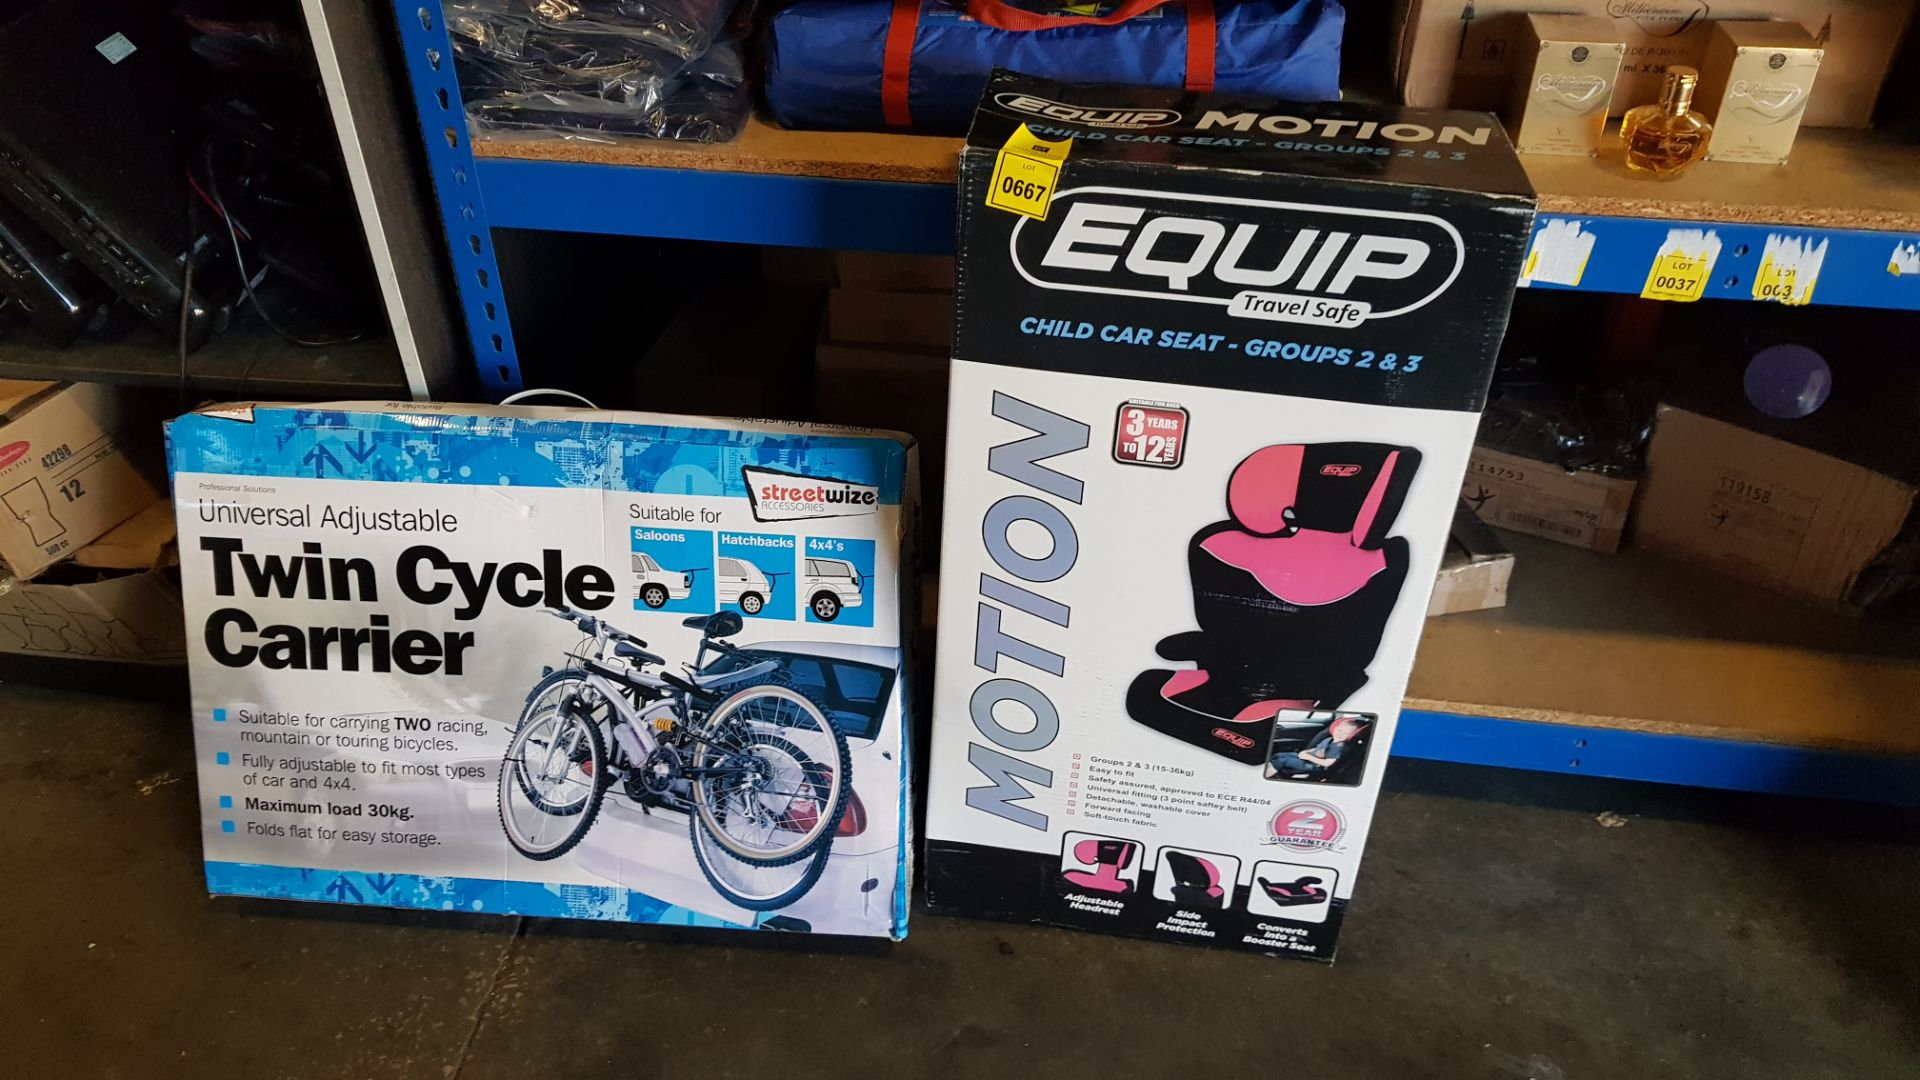 1 X BRAND NEW CHILD CAR SEAT AND 1 X TWIN CYCLE CARRIER